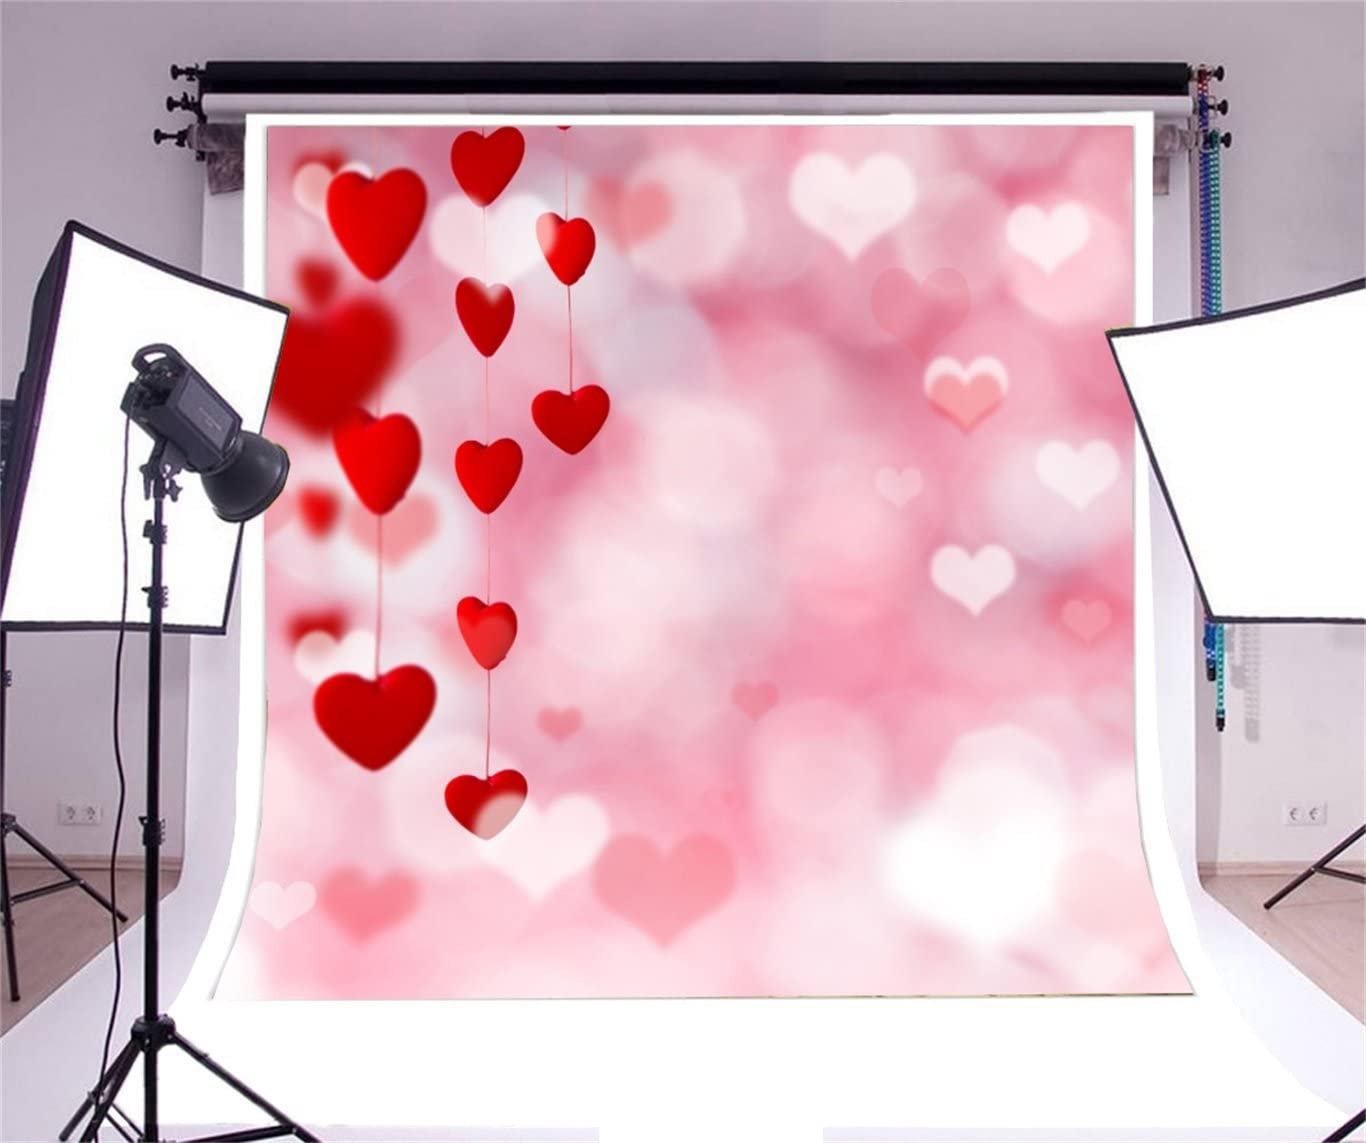 AOFOTO 10x10ft Valentines Day Photography Background Abstract Sweet Love Hearts Backdrop Lovers Girlfriend Couple Bride Woman Kid Artistic Portrait Photoshoot Studio Props Wedding Wallpaper